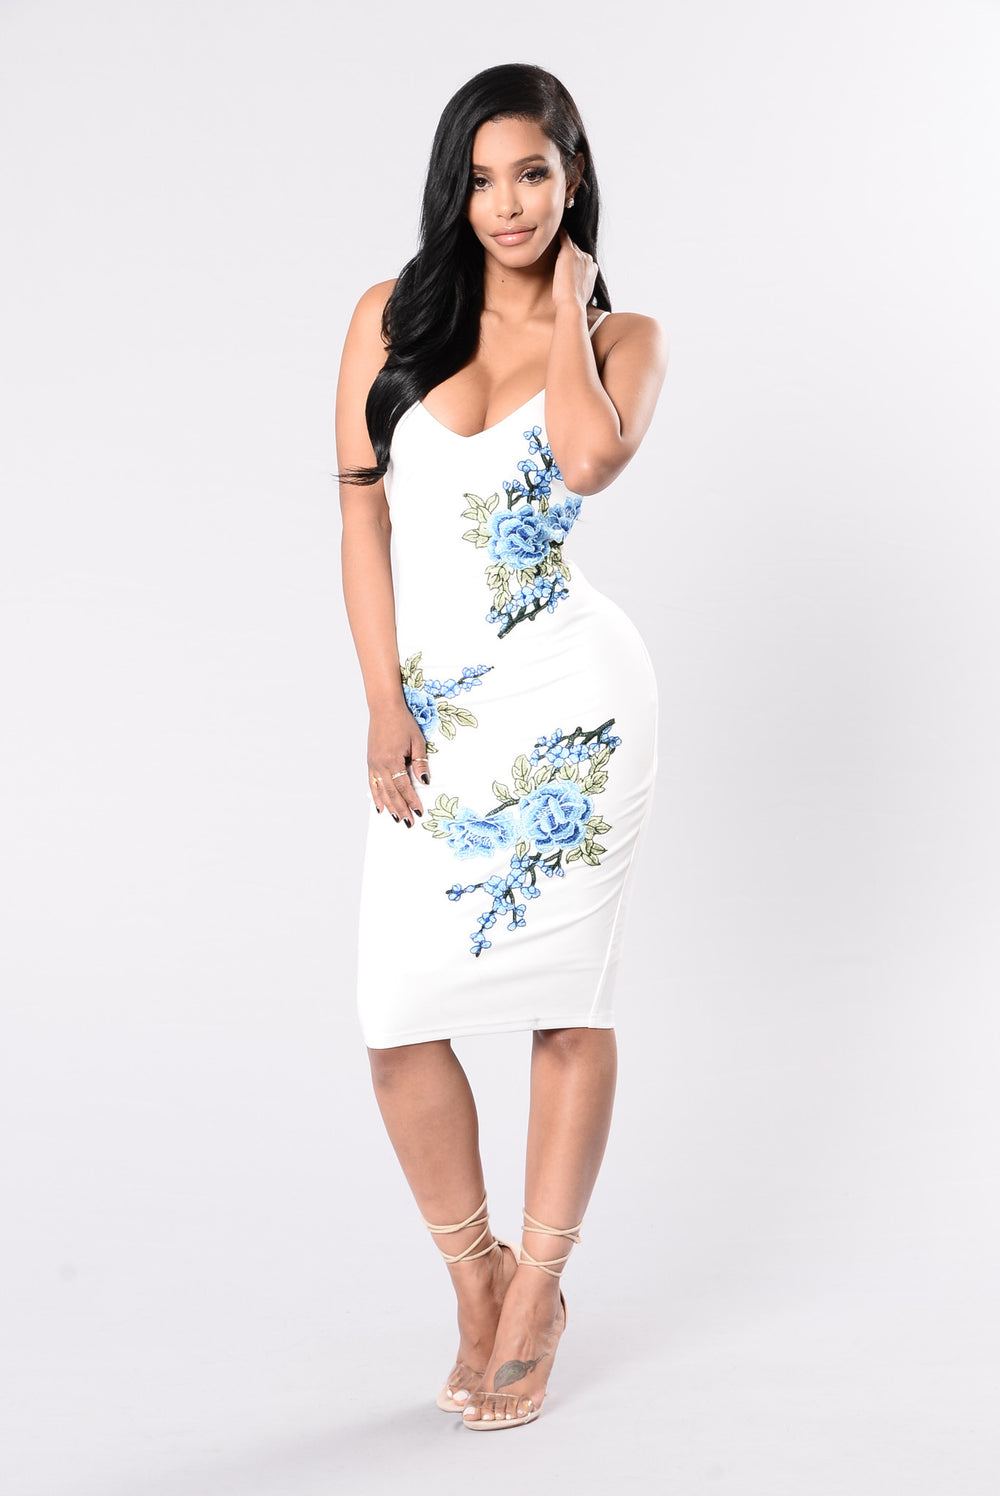 Patch This Dress - Blue Floral